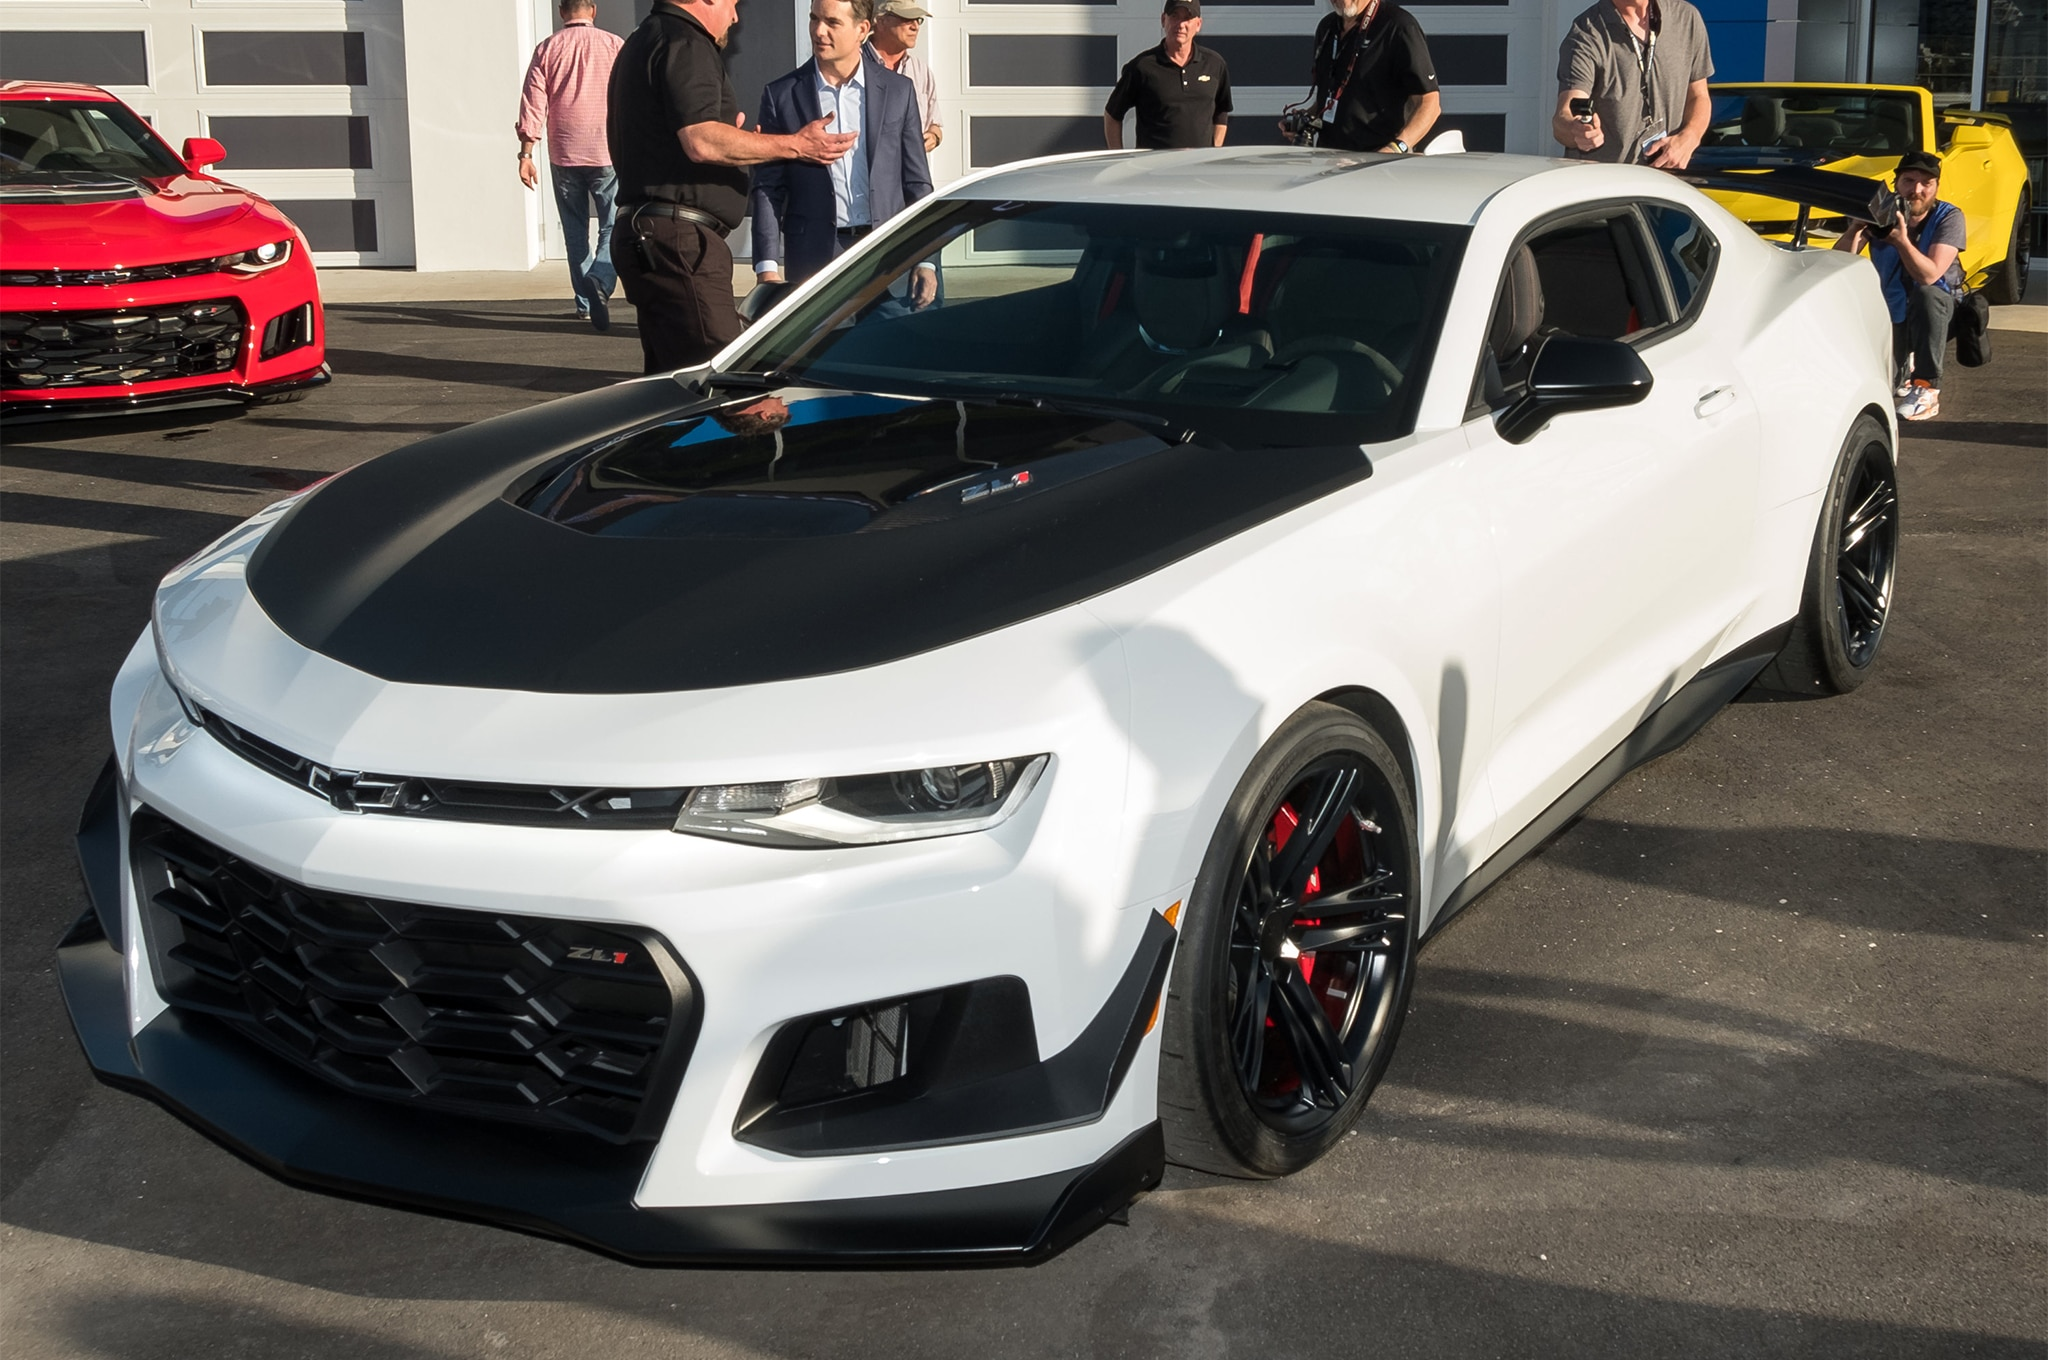 Say Hello To The 2018 Chevrolet Camaro Zl1 1le